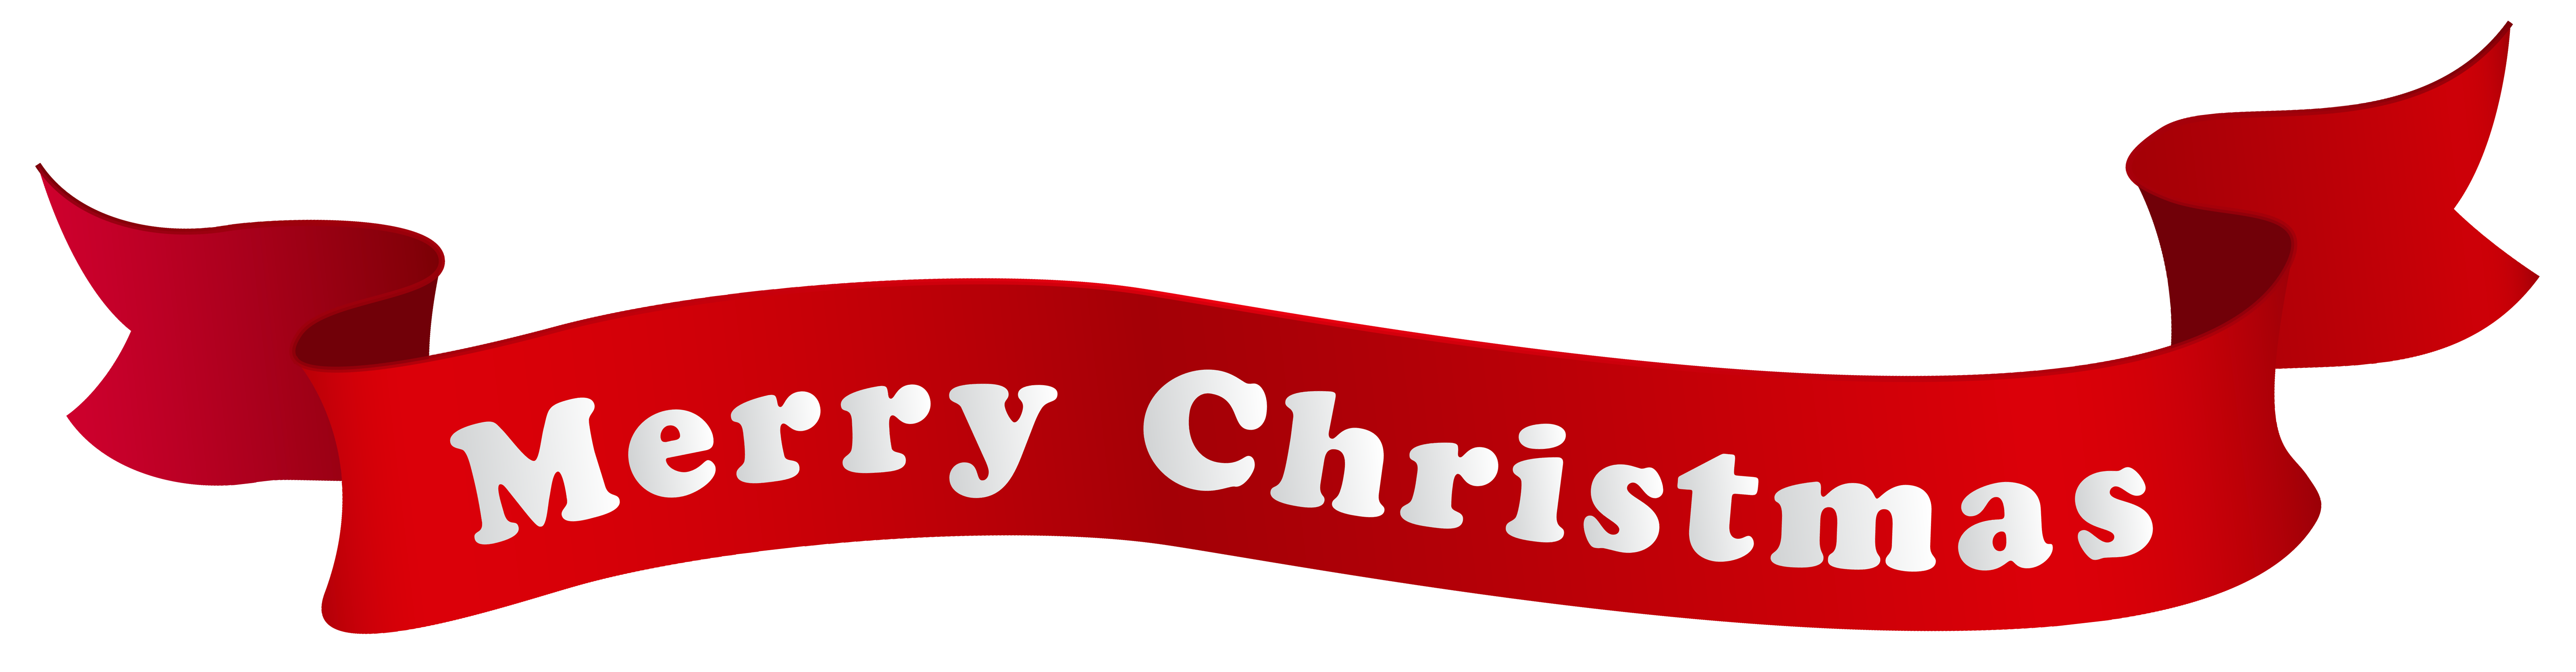 Merry christmas banner png. Clipart image gallery yopriceville